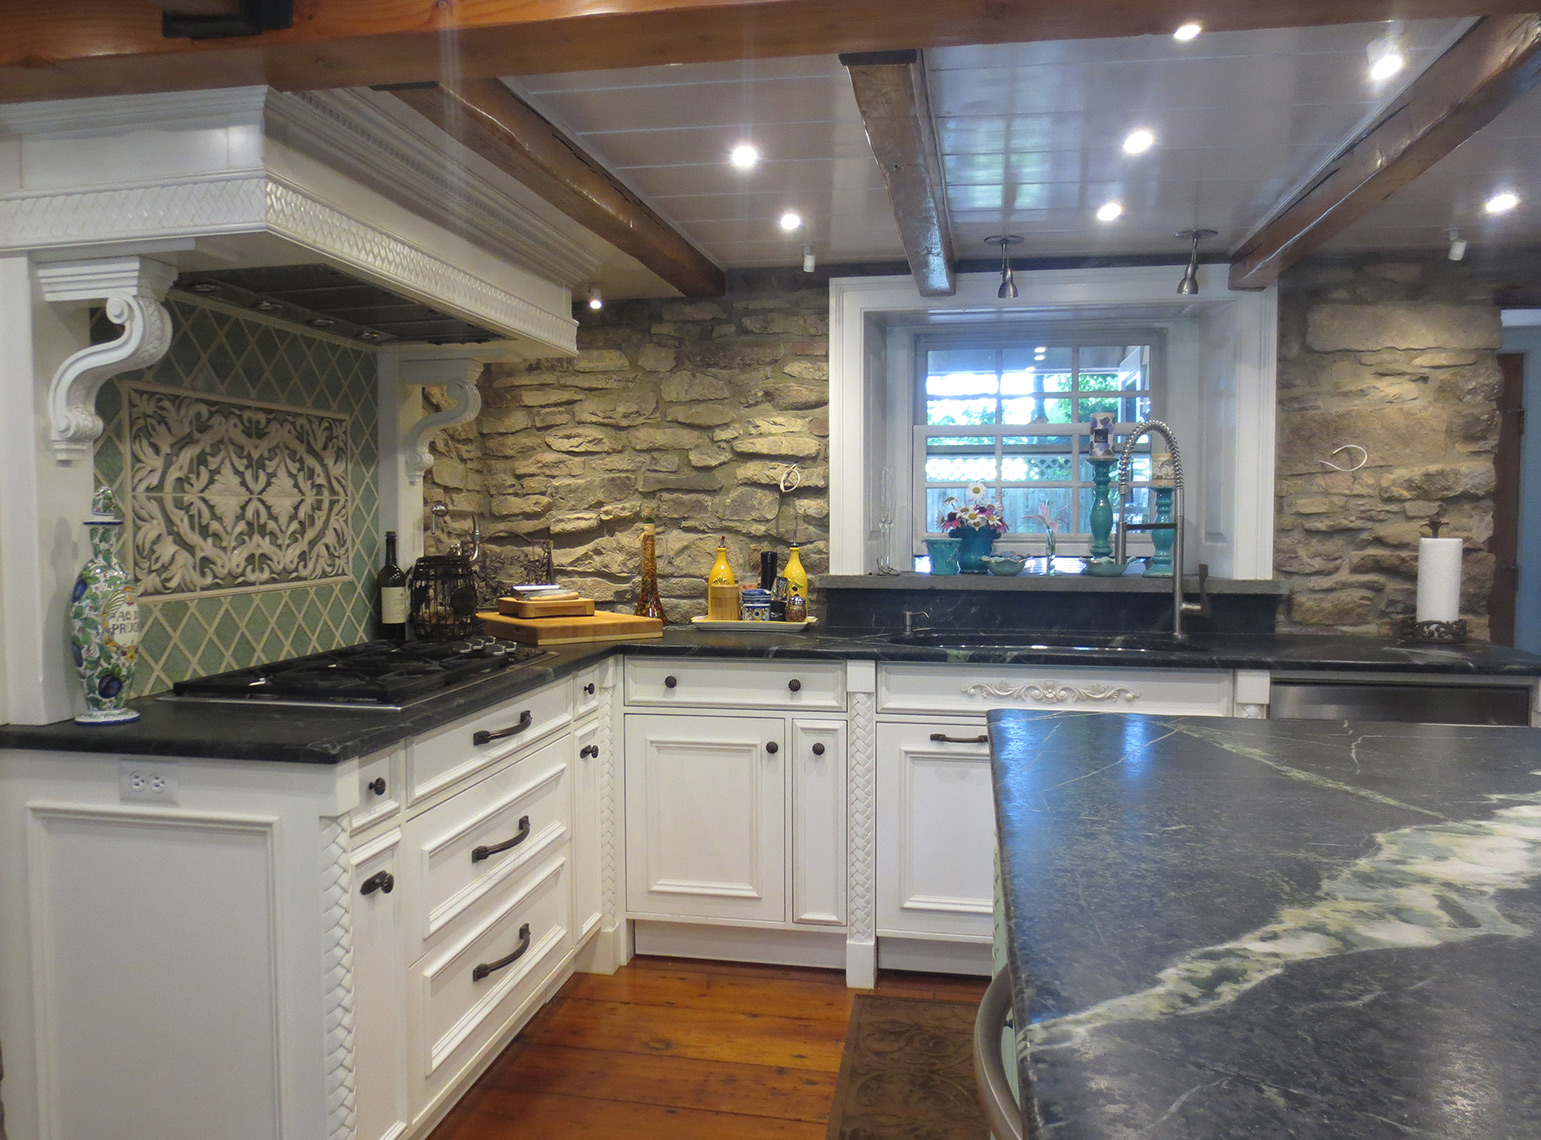 custom kitchen remodels bucks county PA - Traditional, classic custom cabinets, painted, carvings 2